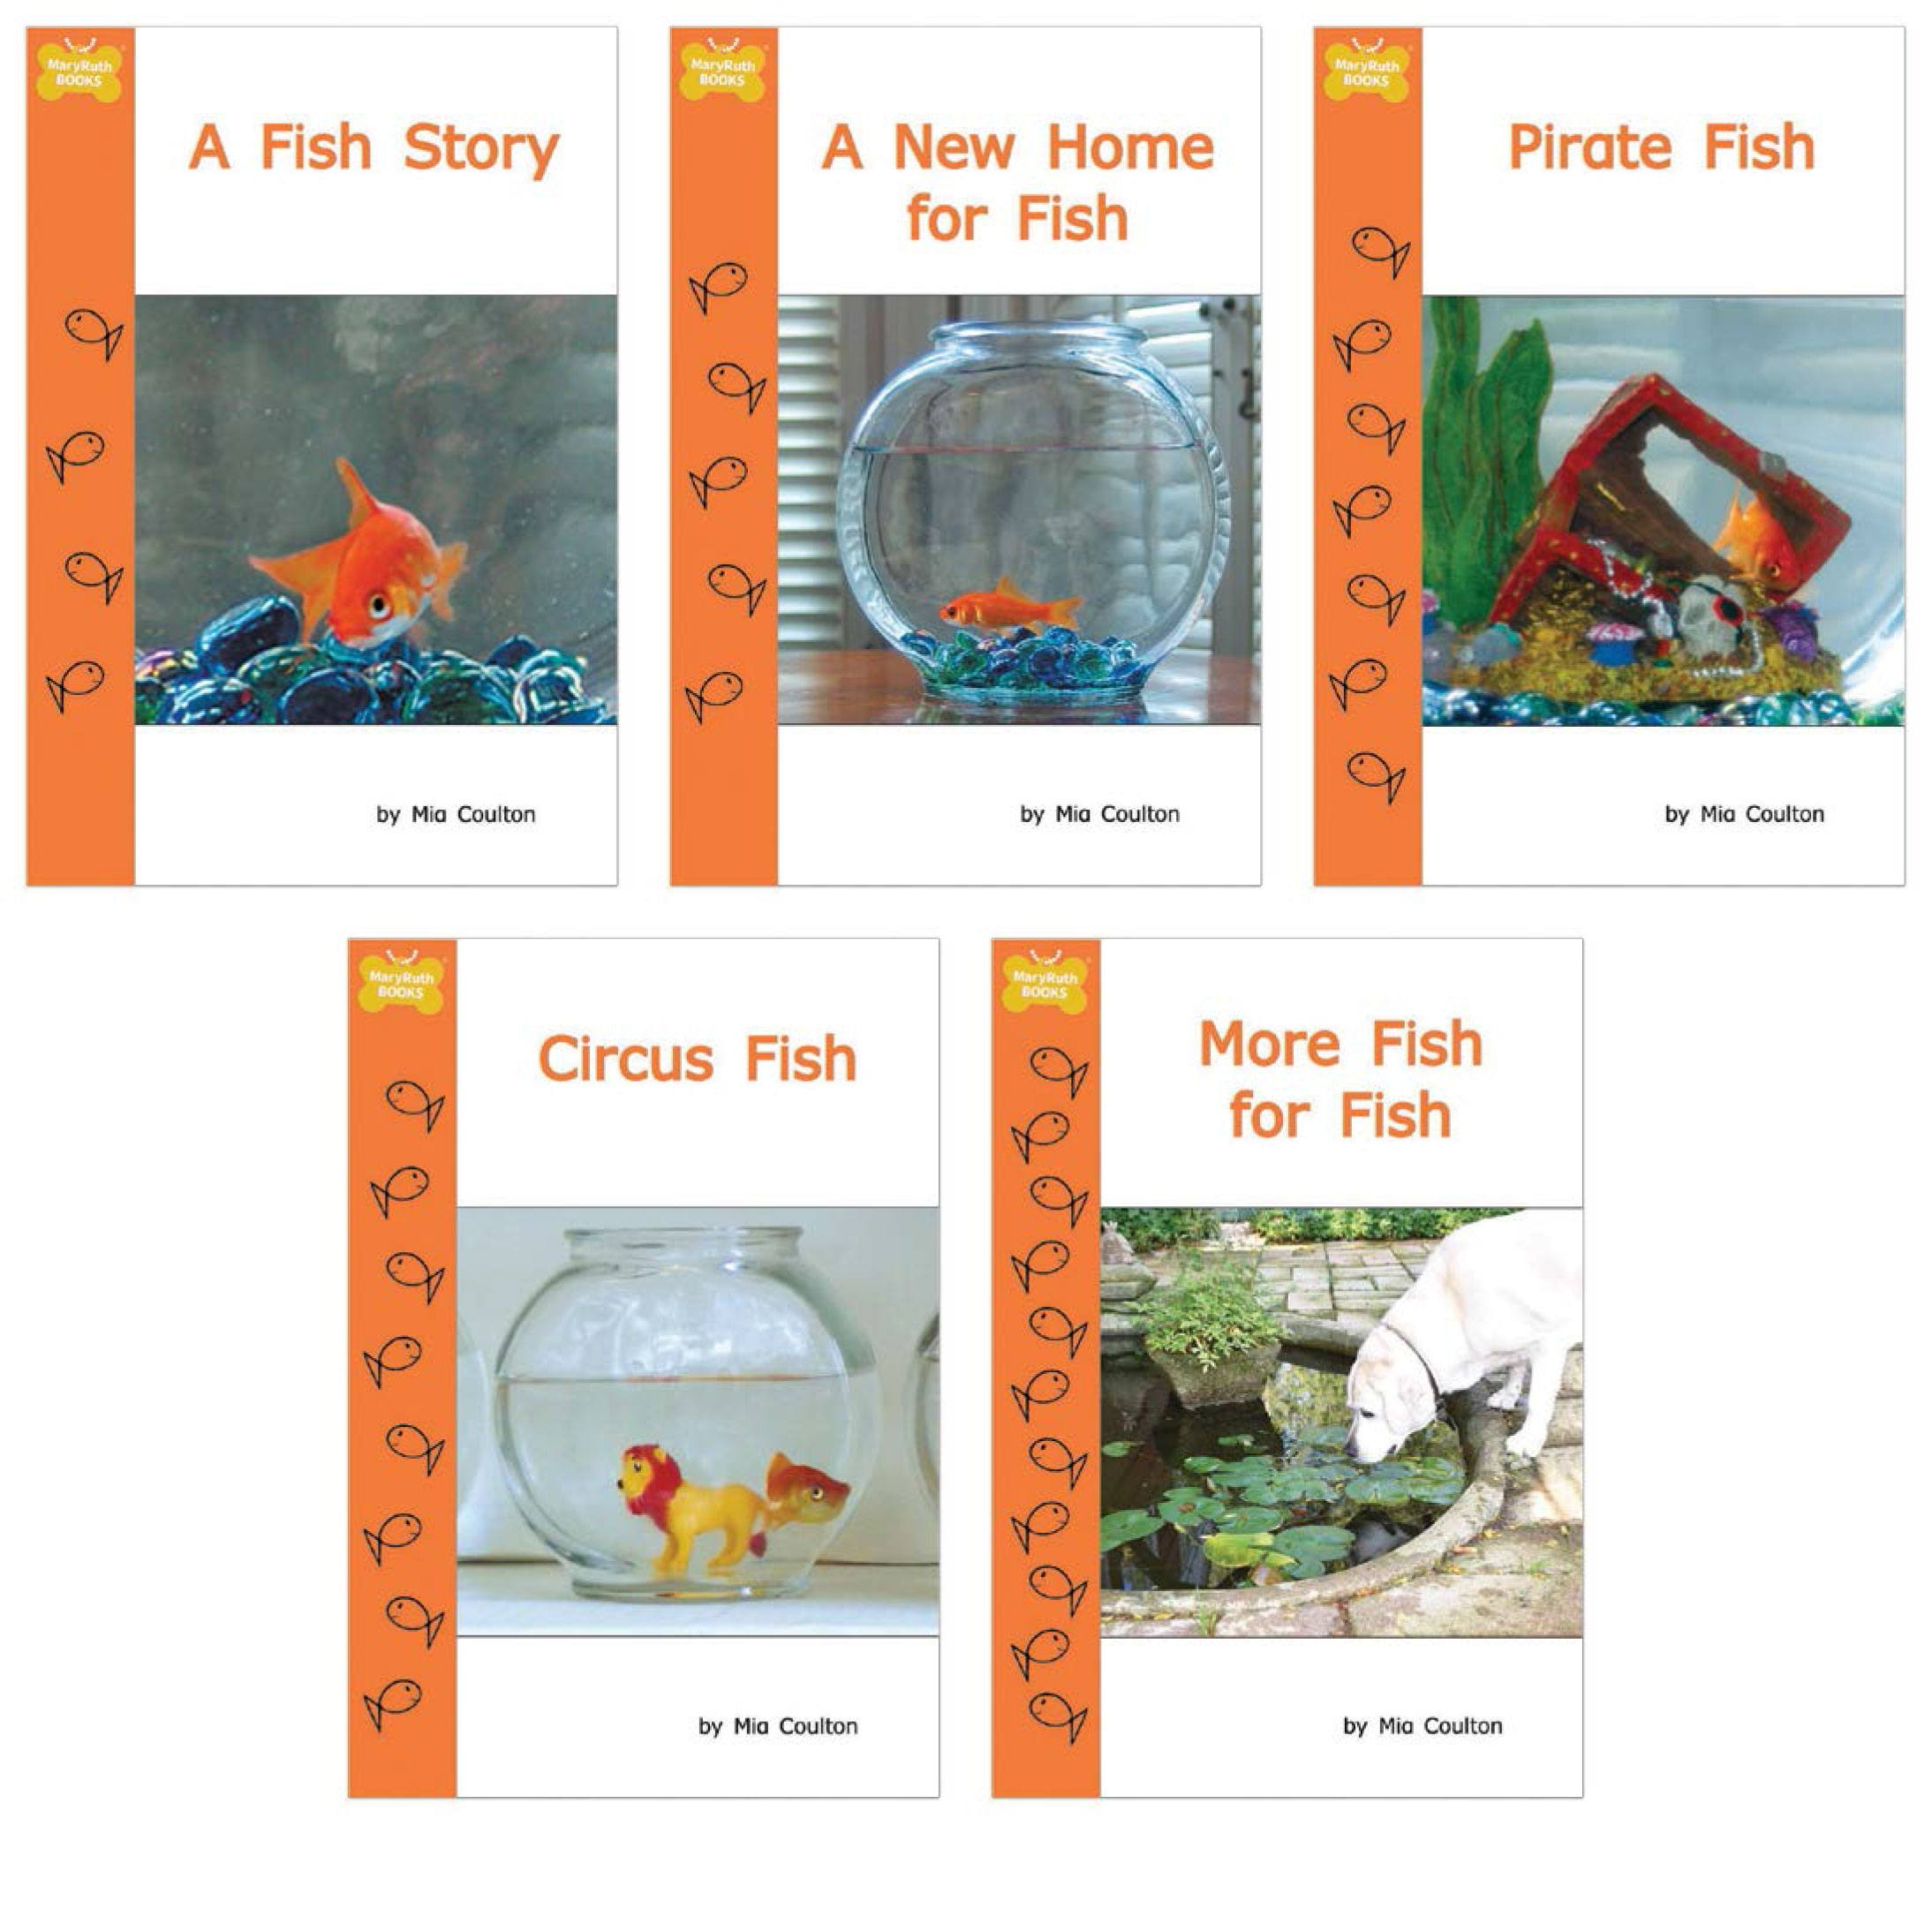 Fish stories set maryruth books for Book with fish bowl on cover